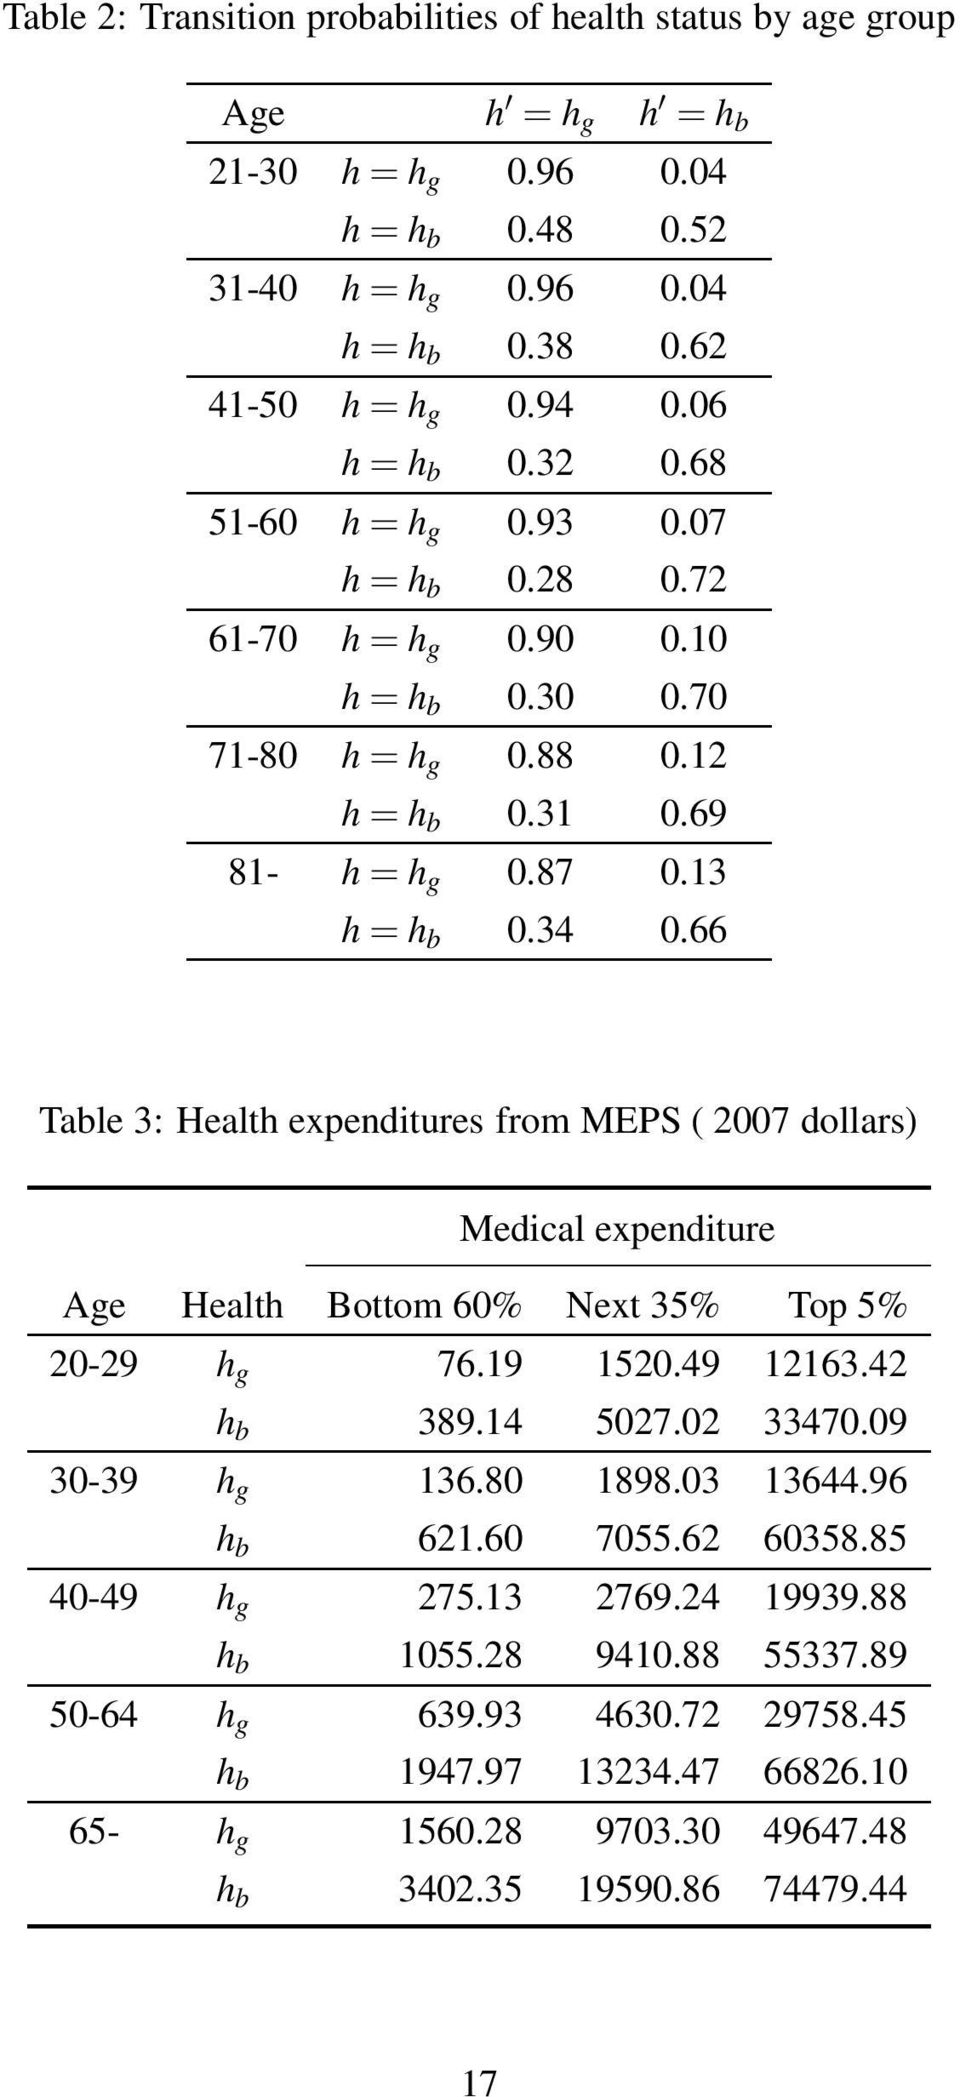 66 Table 3: Health expenditures from MEPS ( 2007 dollars) Medical expenditure Age Health Bottom 60% Next 35% Top 5% 20-29 h g 76.19 1520.49 12163.42 h b 389.14 5027.02 33470.09 30-39 h g 136.